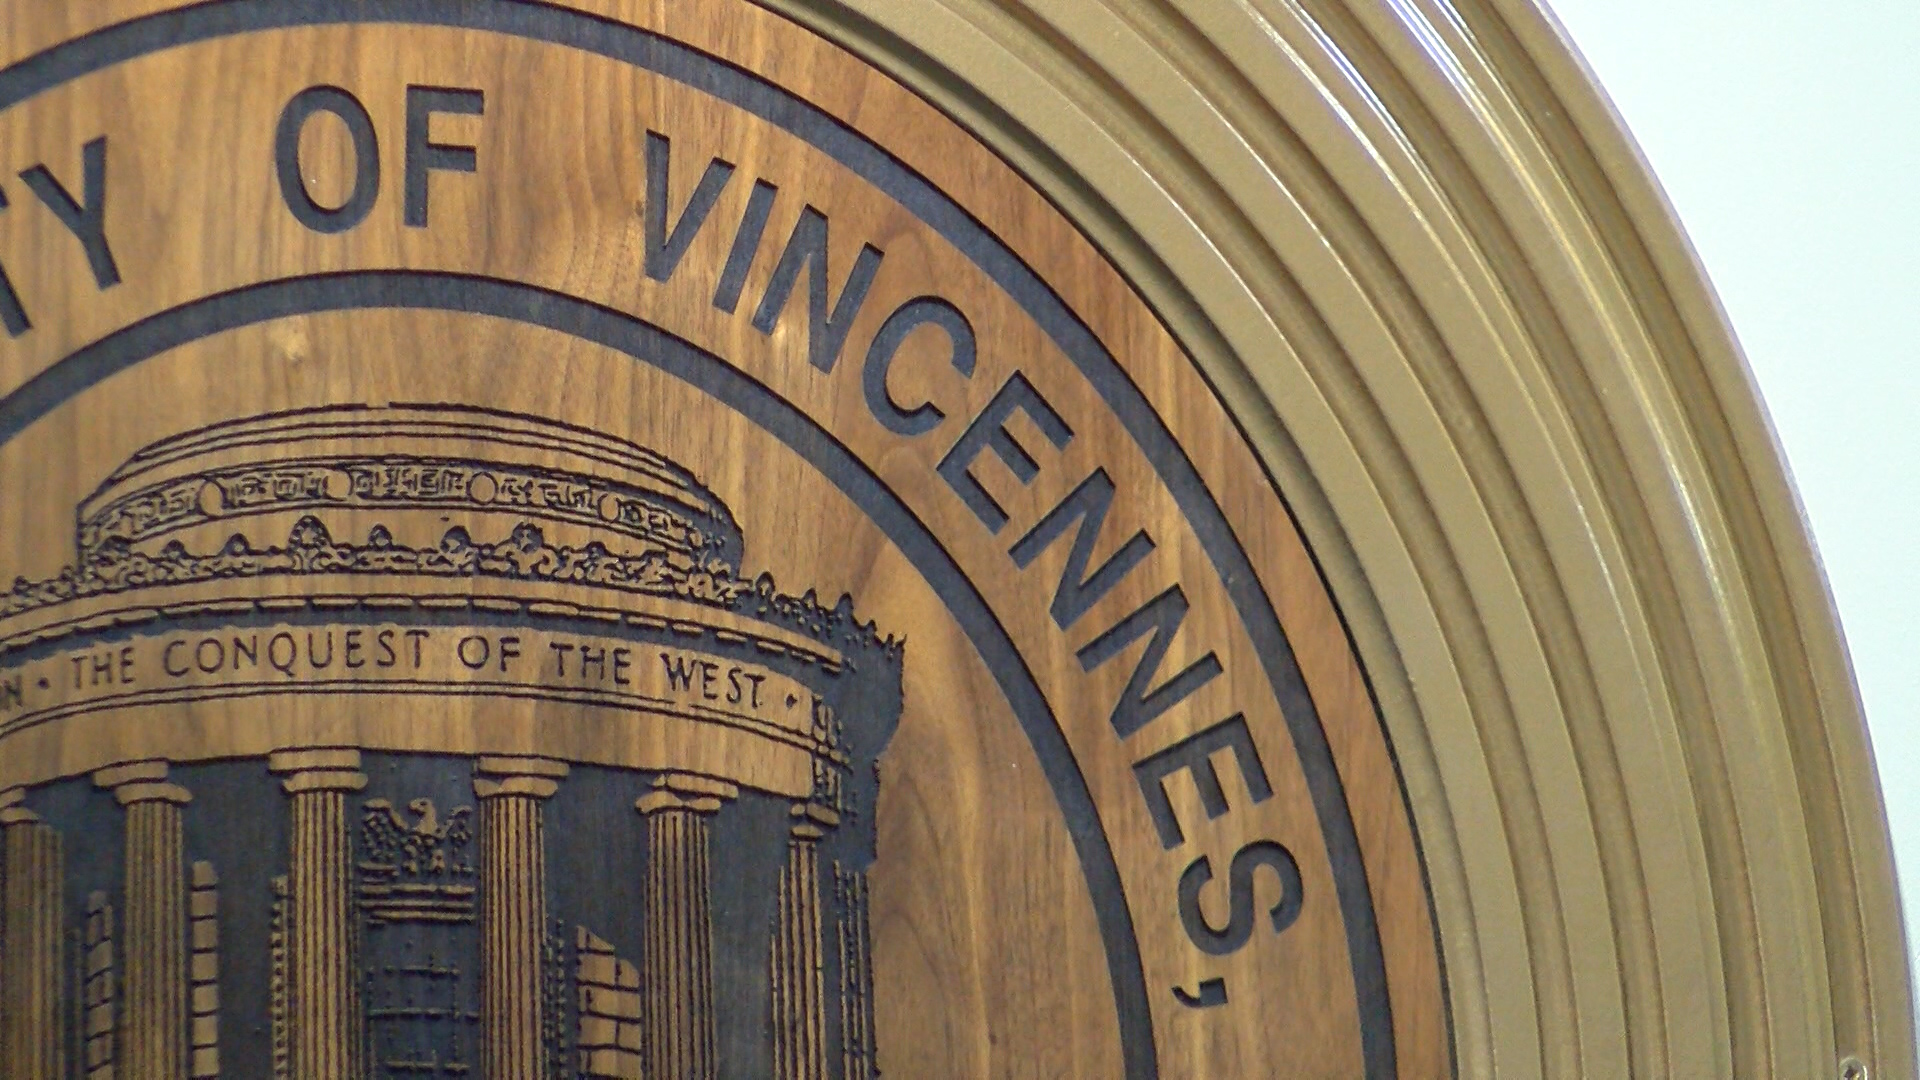 vincennes historic sign_1481852798936.jpg